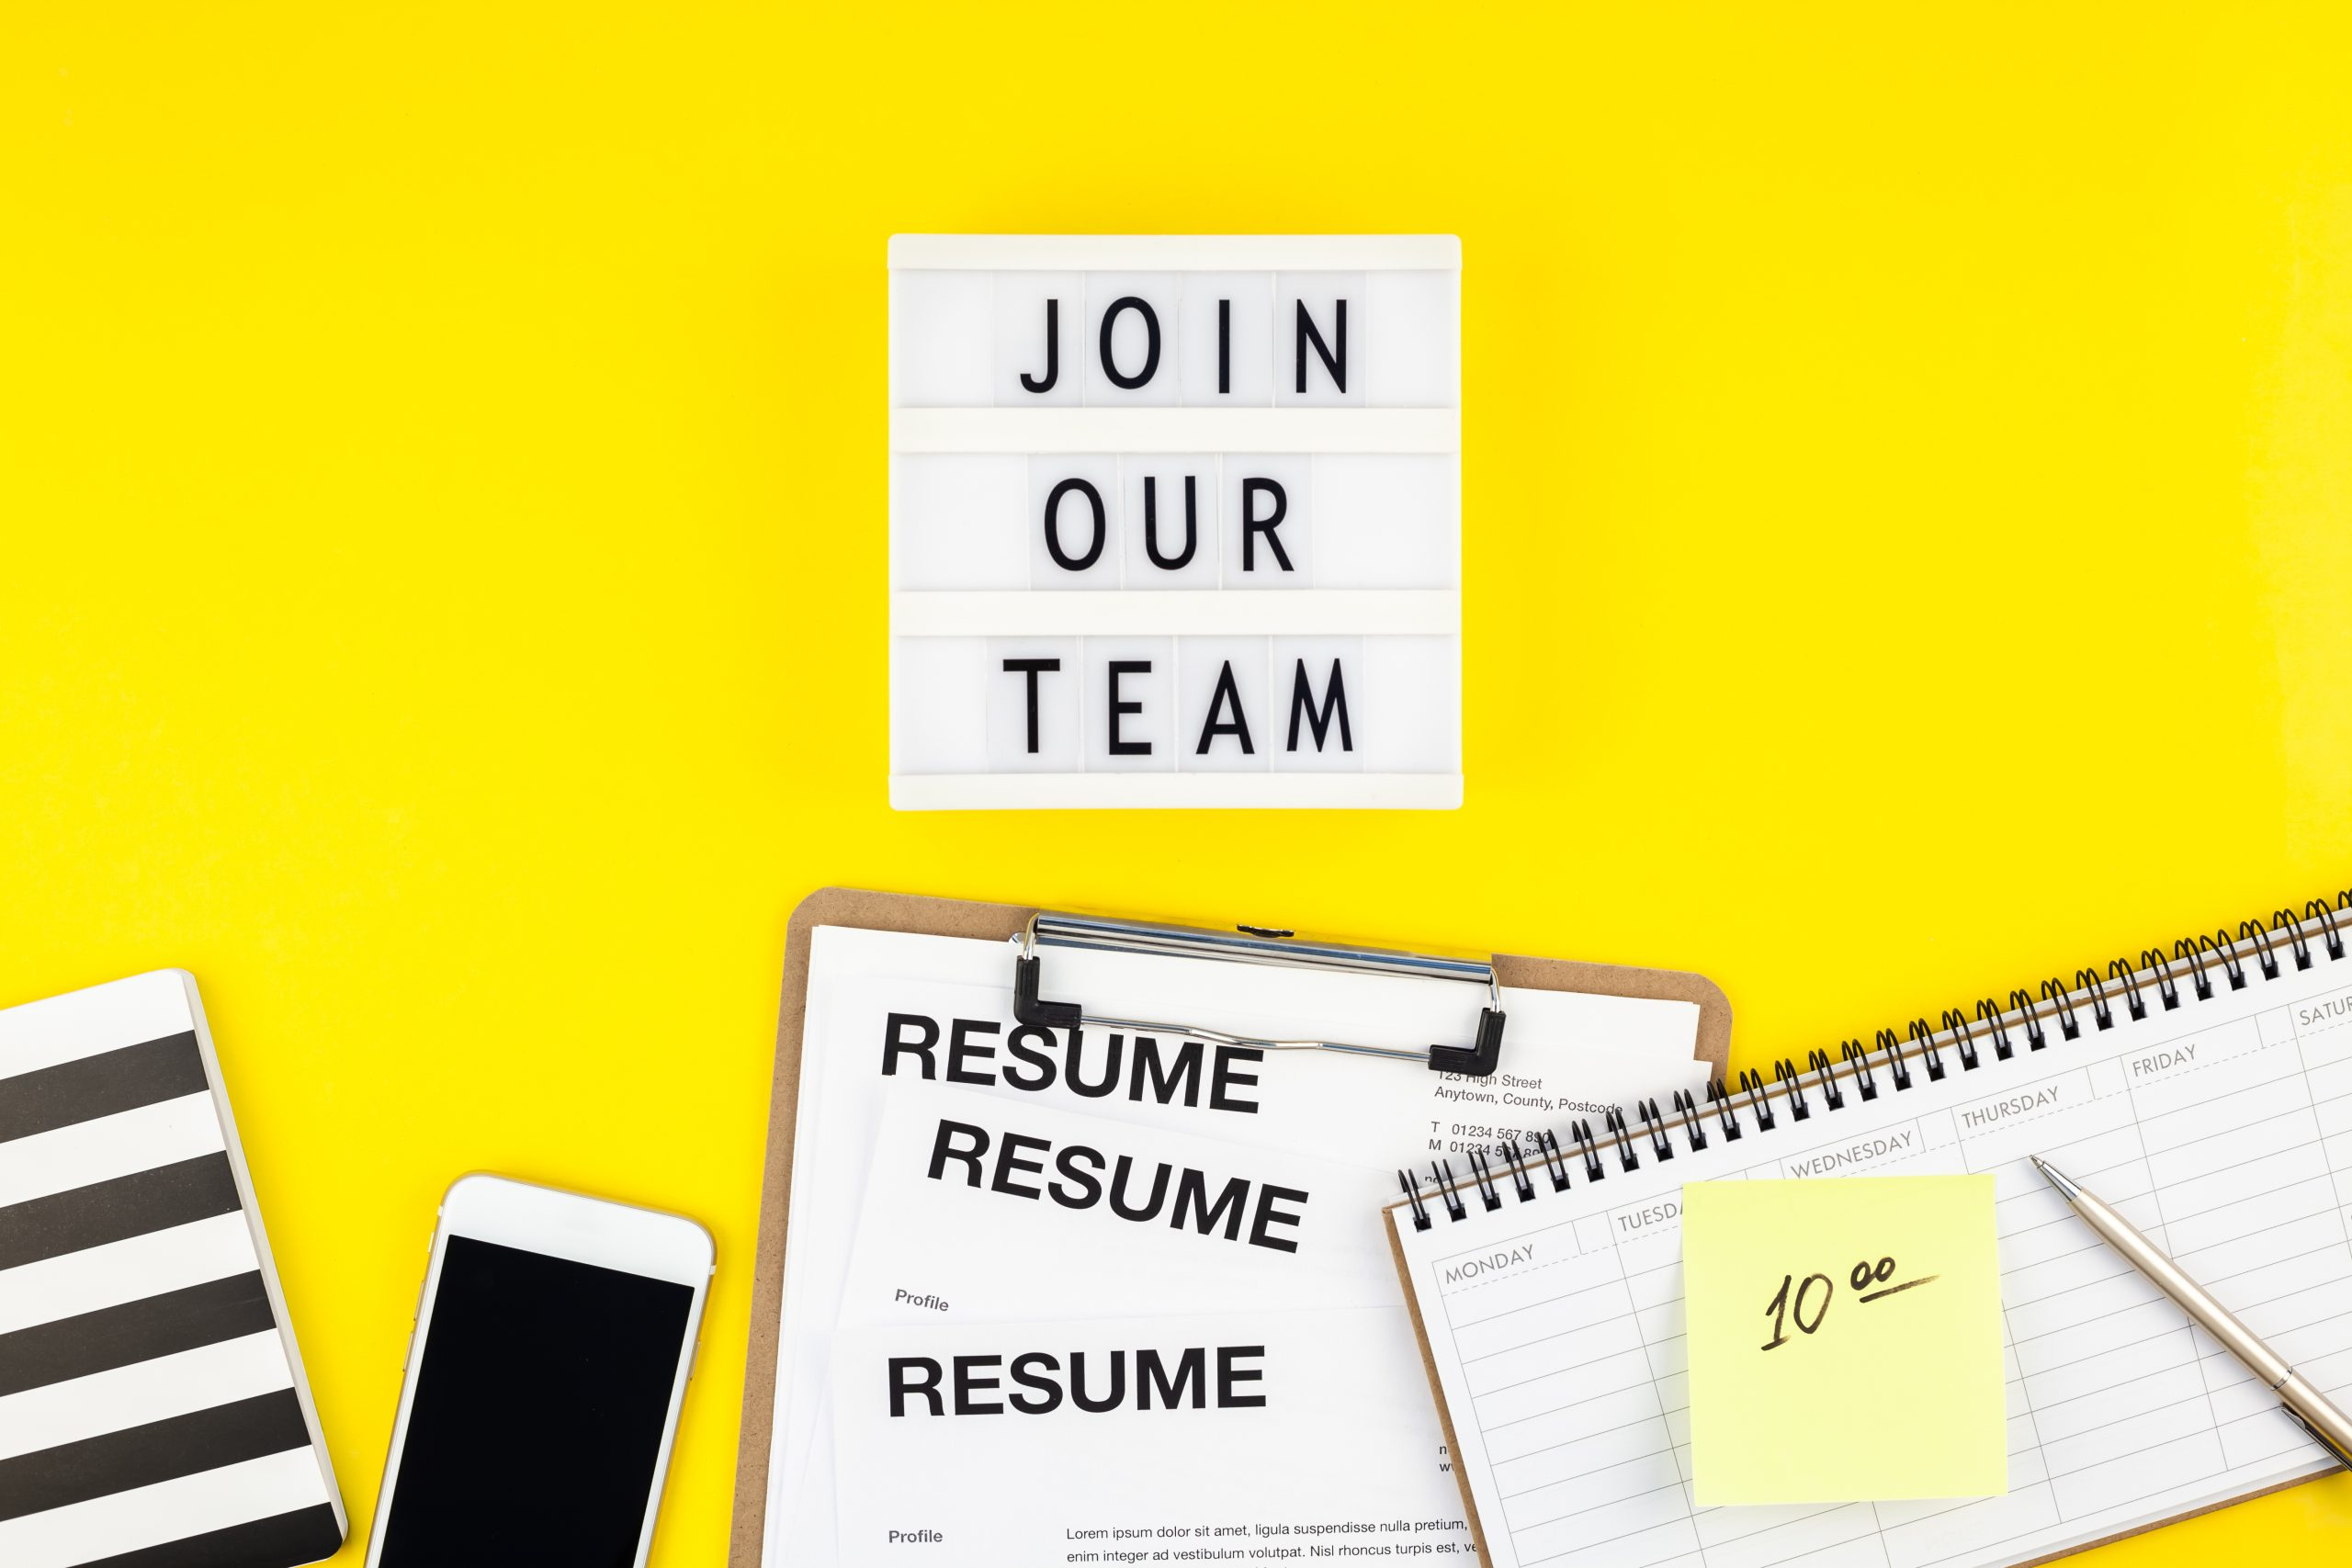 Join our team flat lay on yellow background image